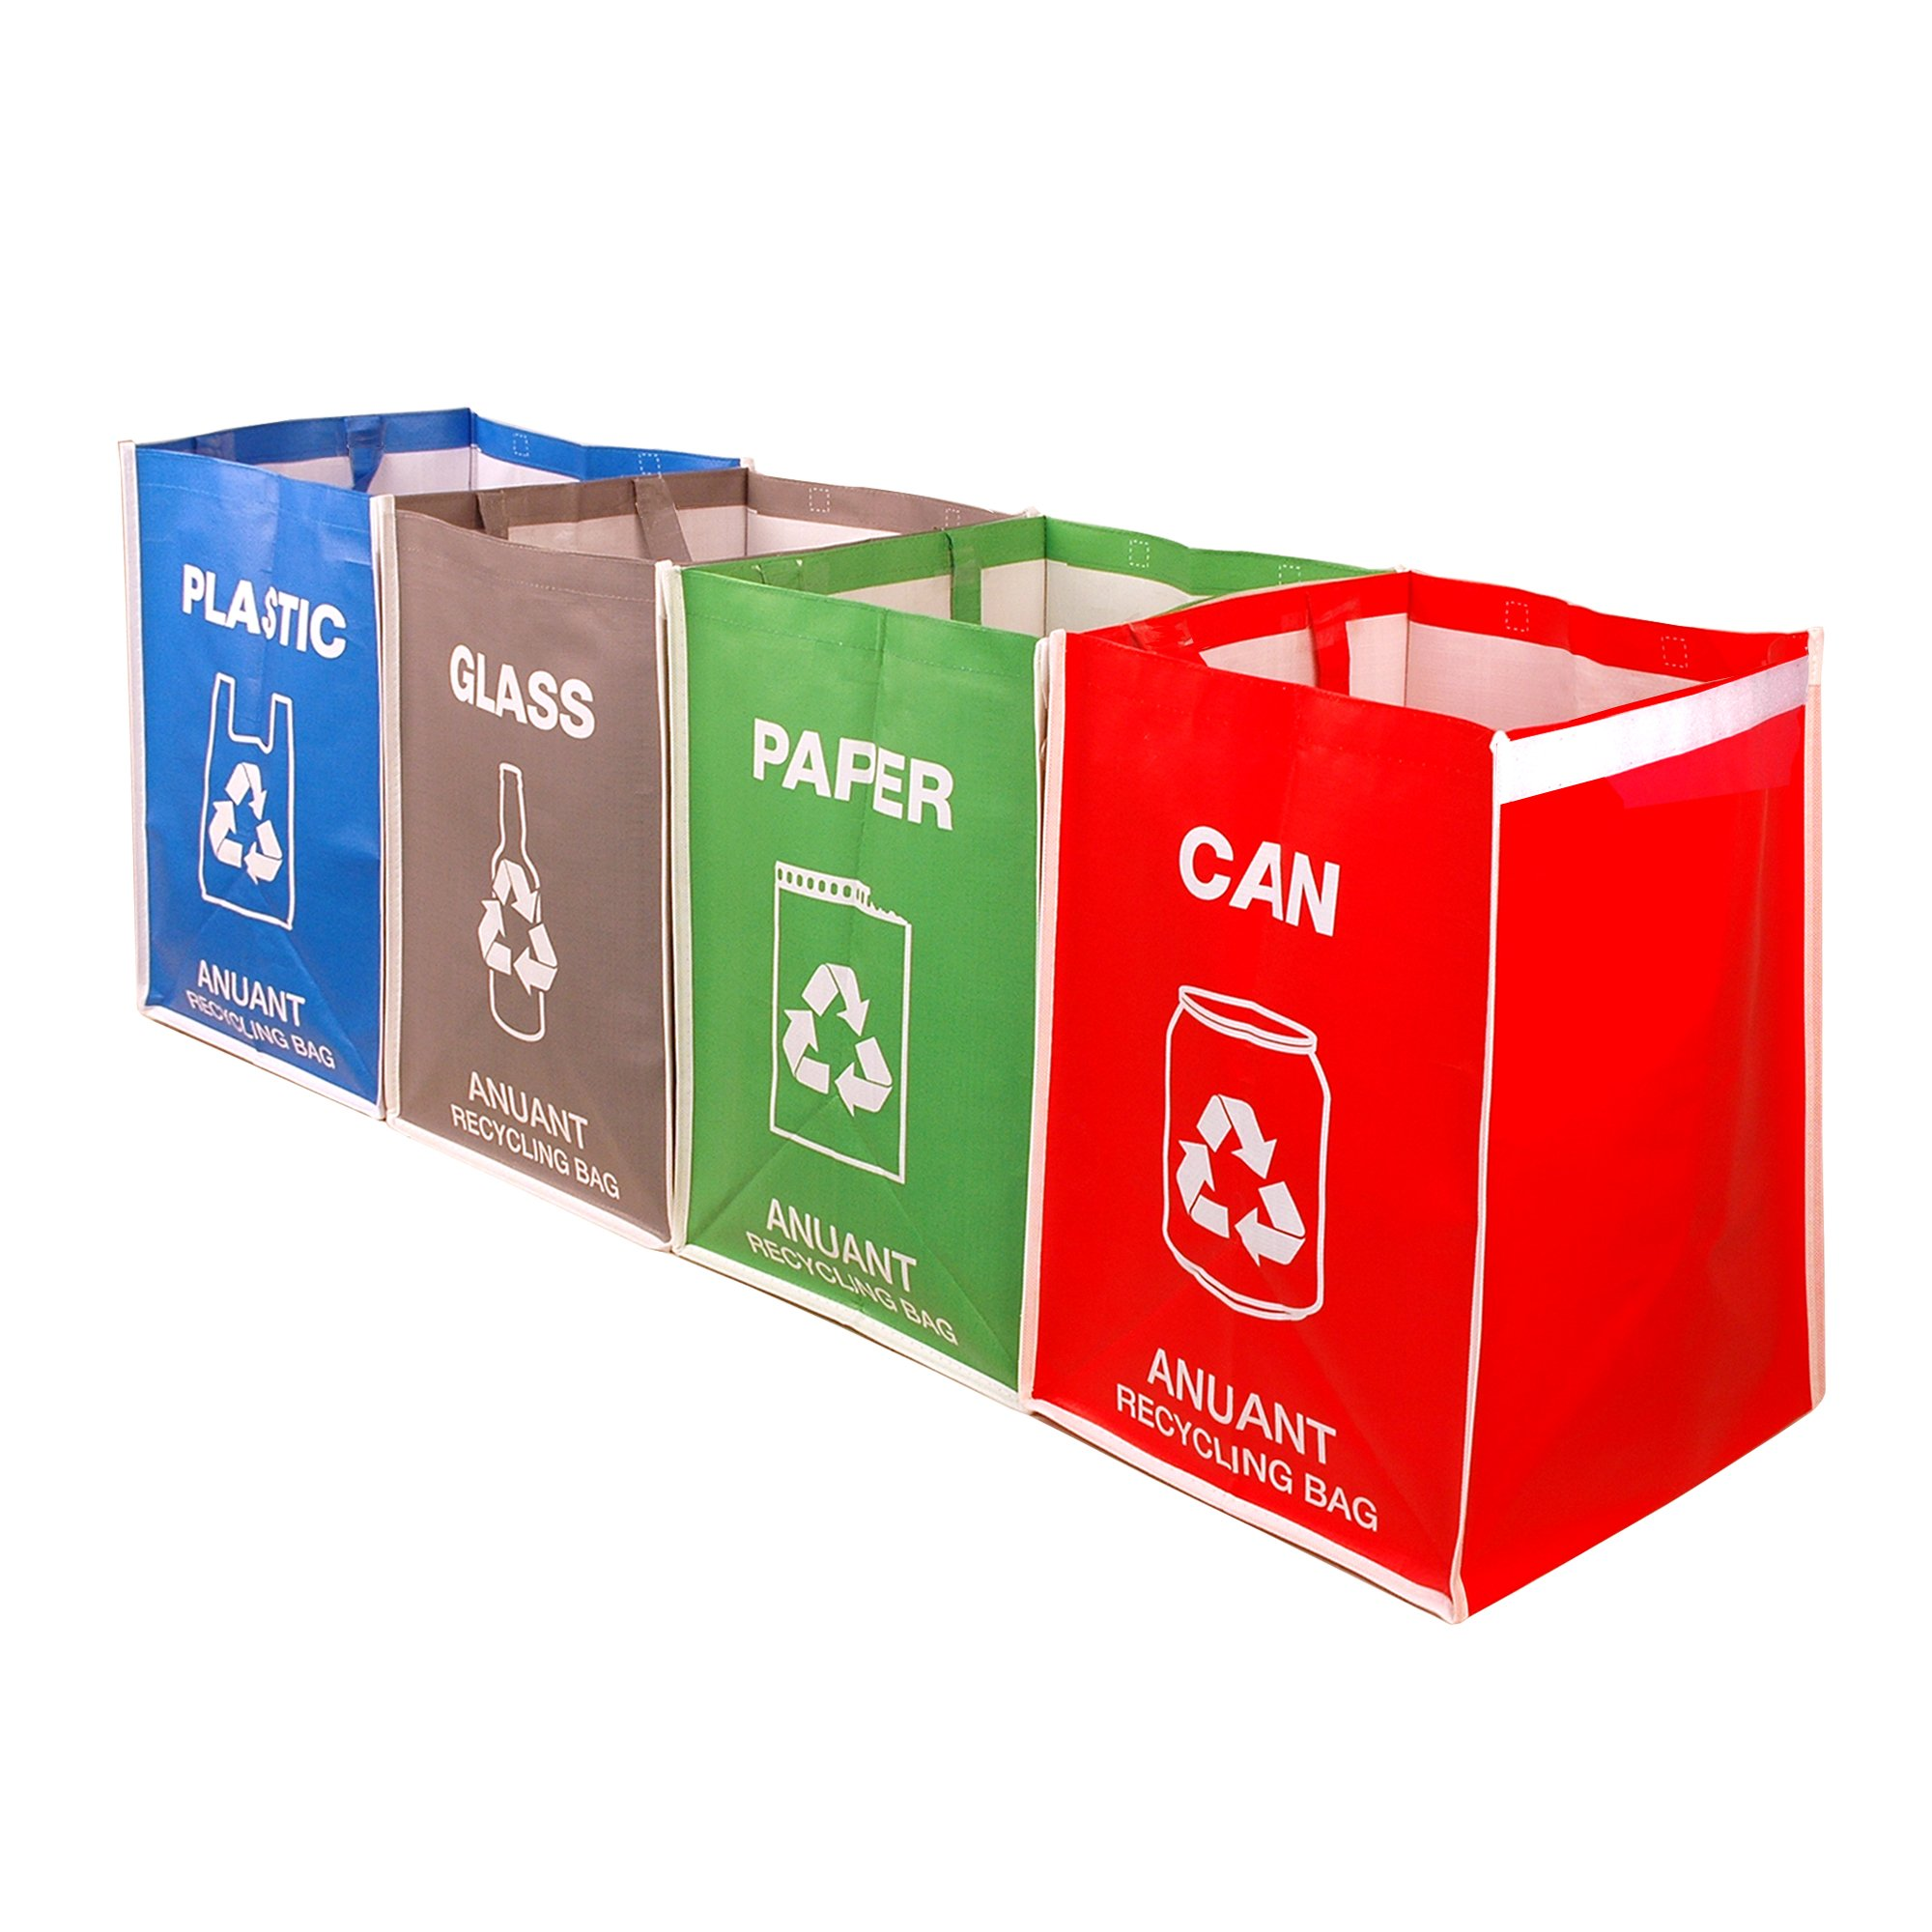 Separate Recycling Waste Bin Bags for Kitchen Office in Home - Recycle Garbage Trash Sorting Bins Organizer Waterproof Baskets Compartment Container Big Size 4 Bags Set by ANUANT (Image #2)